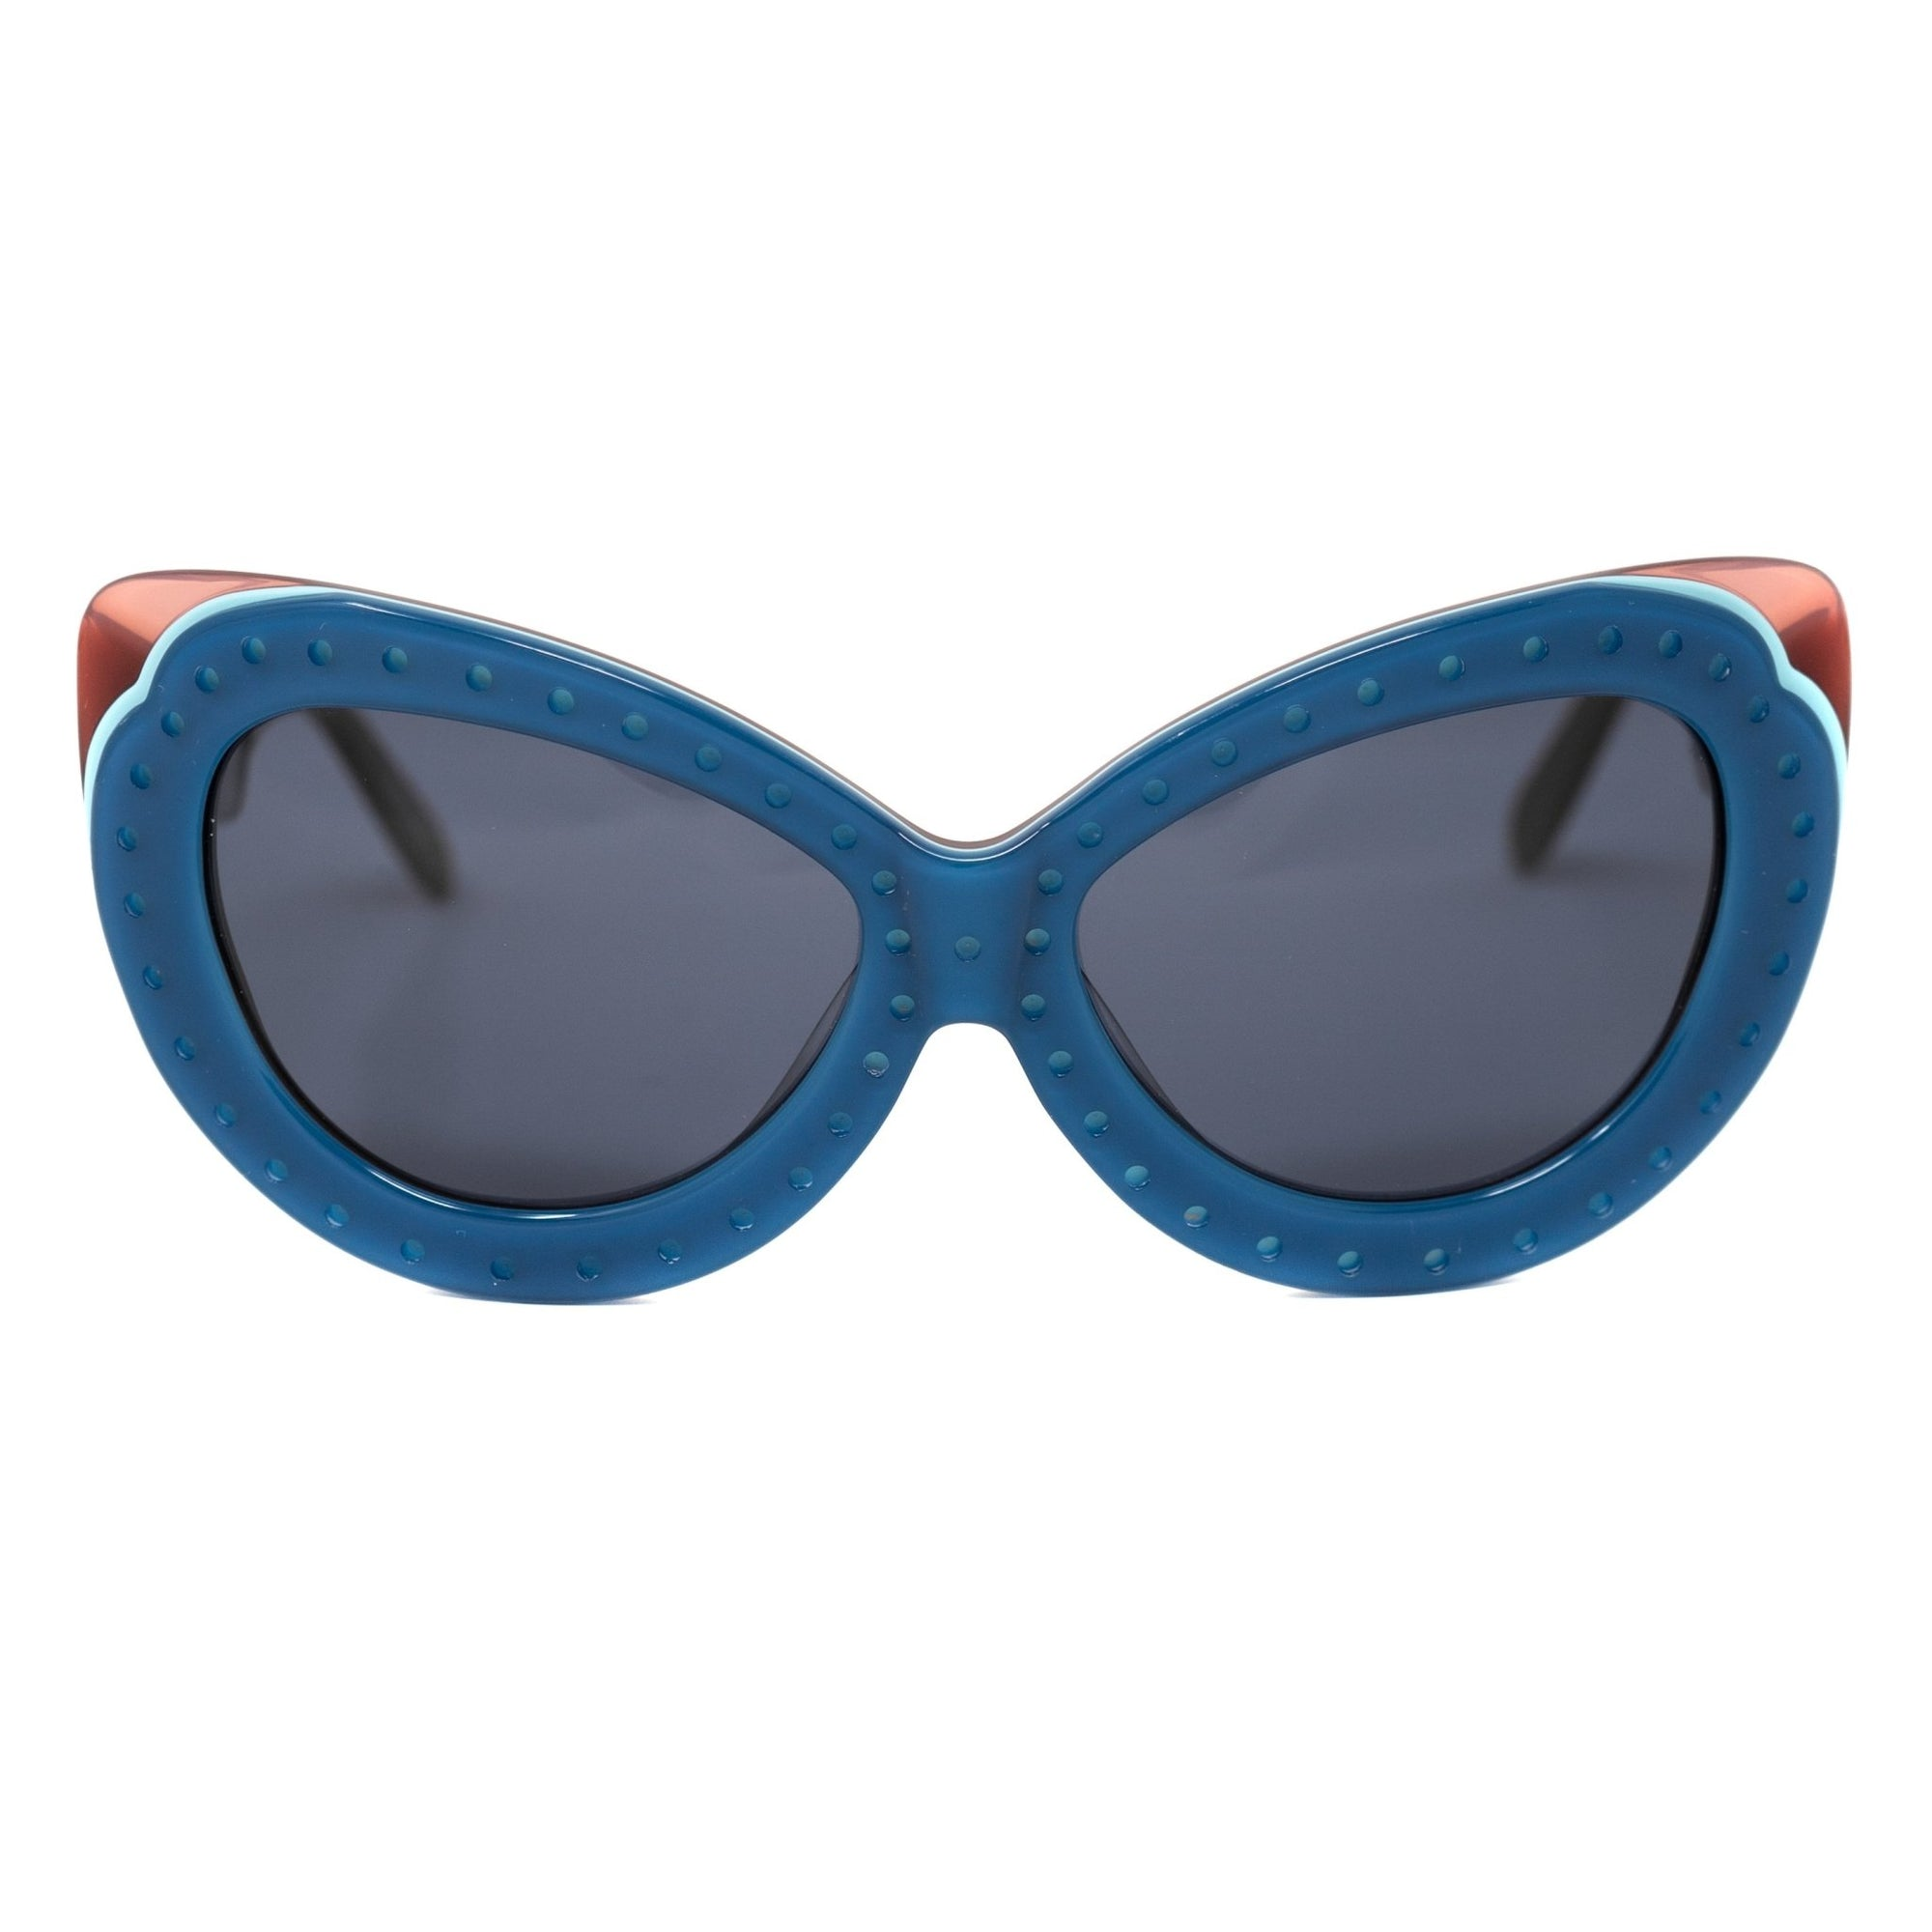 Eley Kishimoto Sunglasses Cat Eye Blue With Grey Category 3 Lenses 6EK10C4BLUE - Watches & Crystals